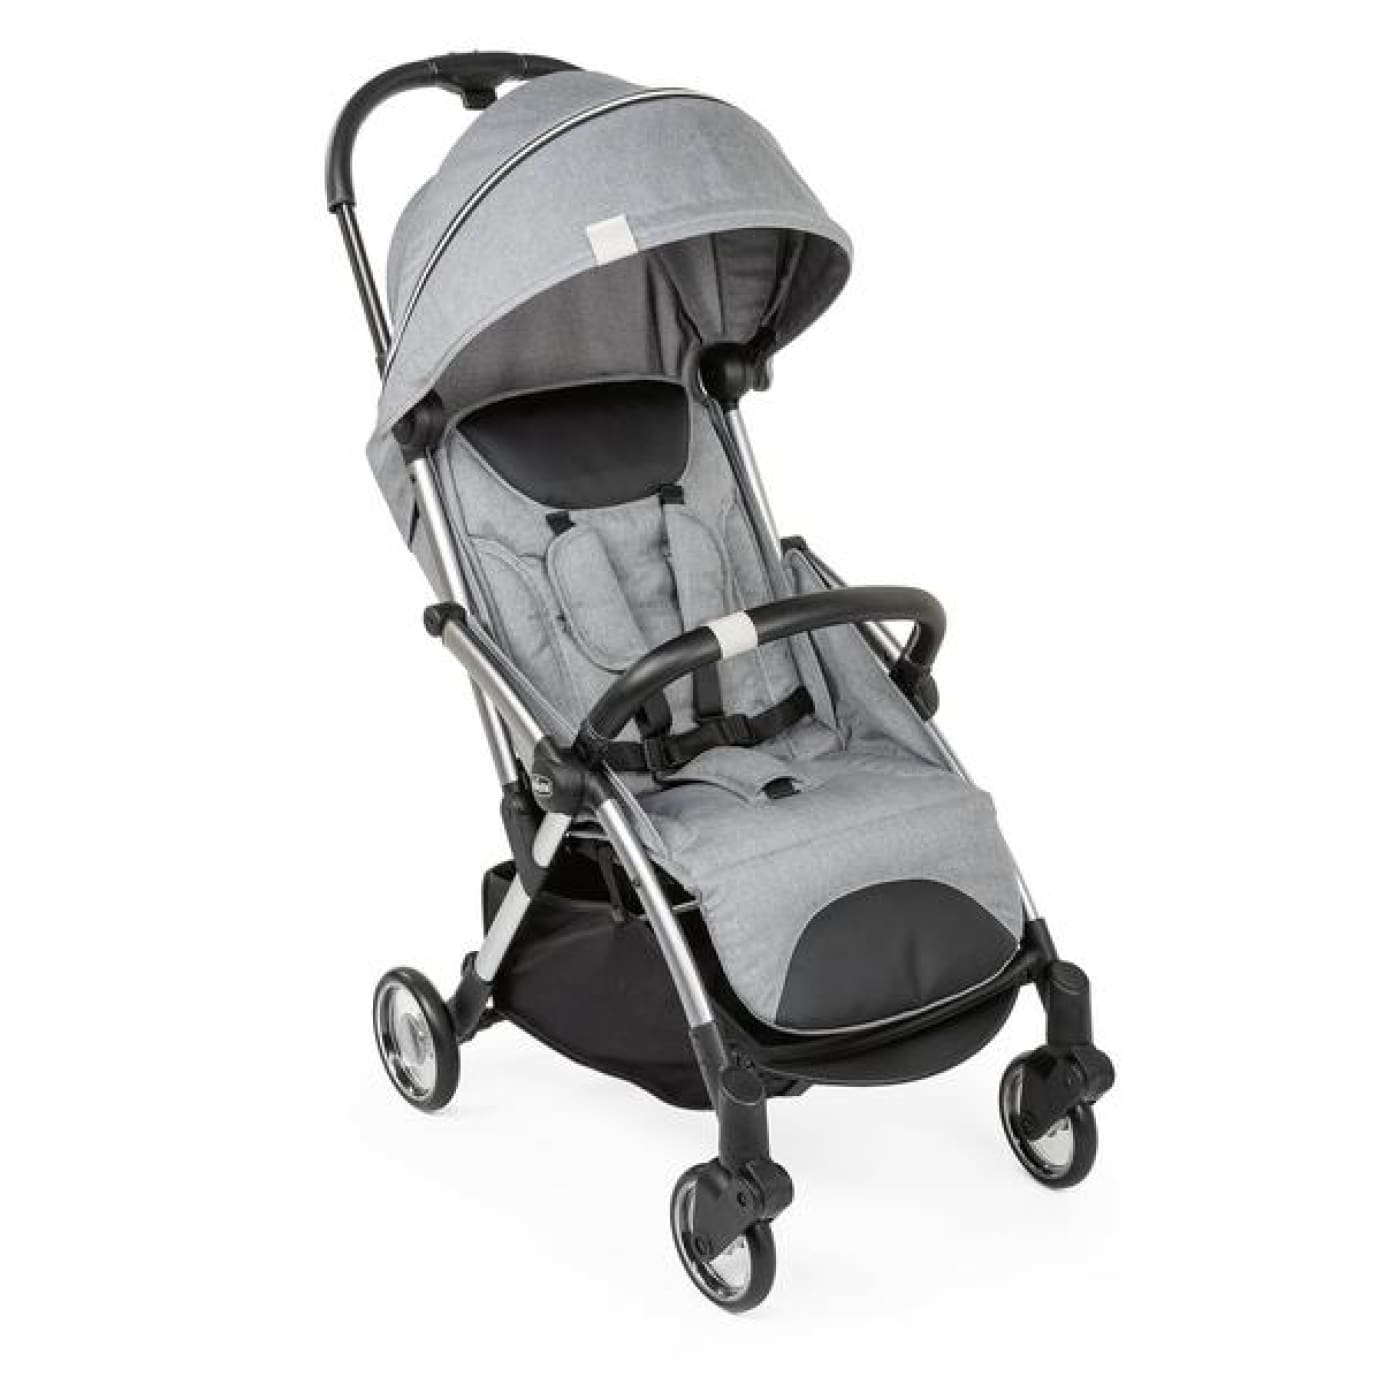 Chicco Goody Stroller - Cool Grey - Cool Grey - PRAMS & STROLLERS - COMPACT/TRAVEL